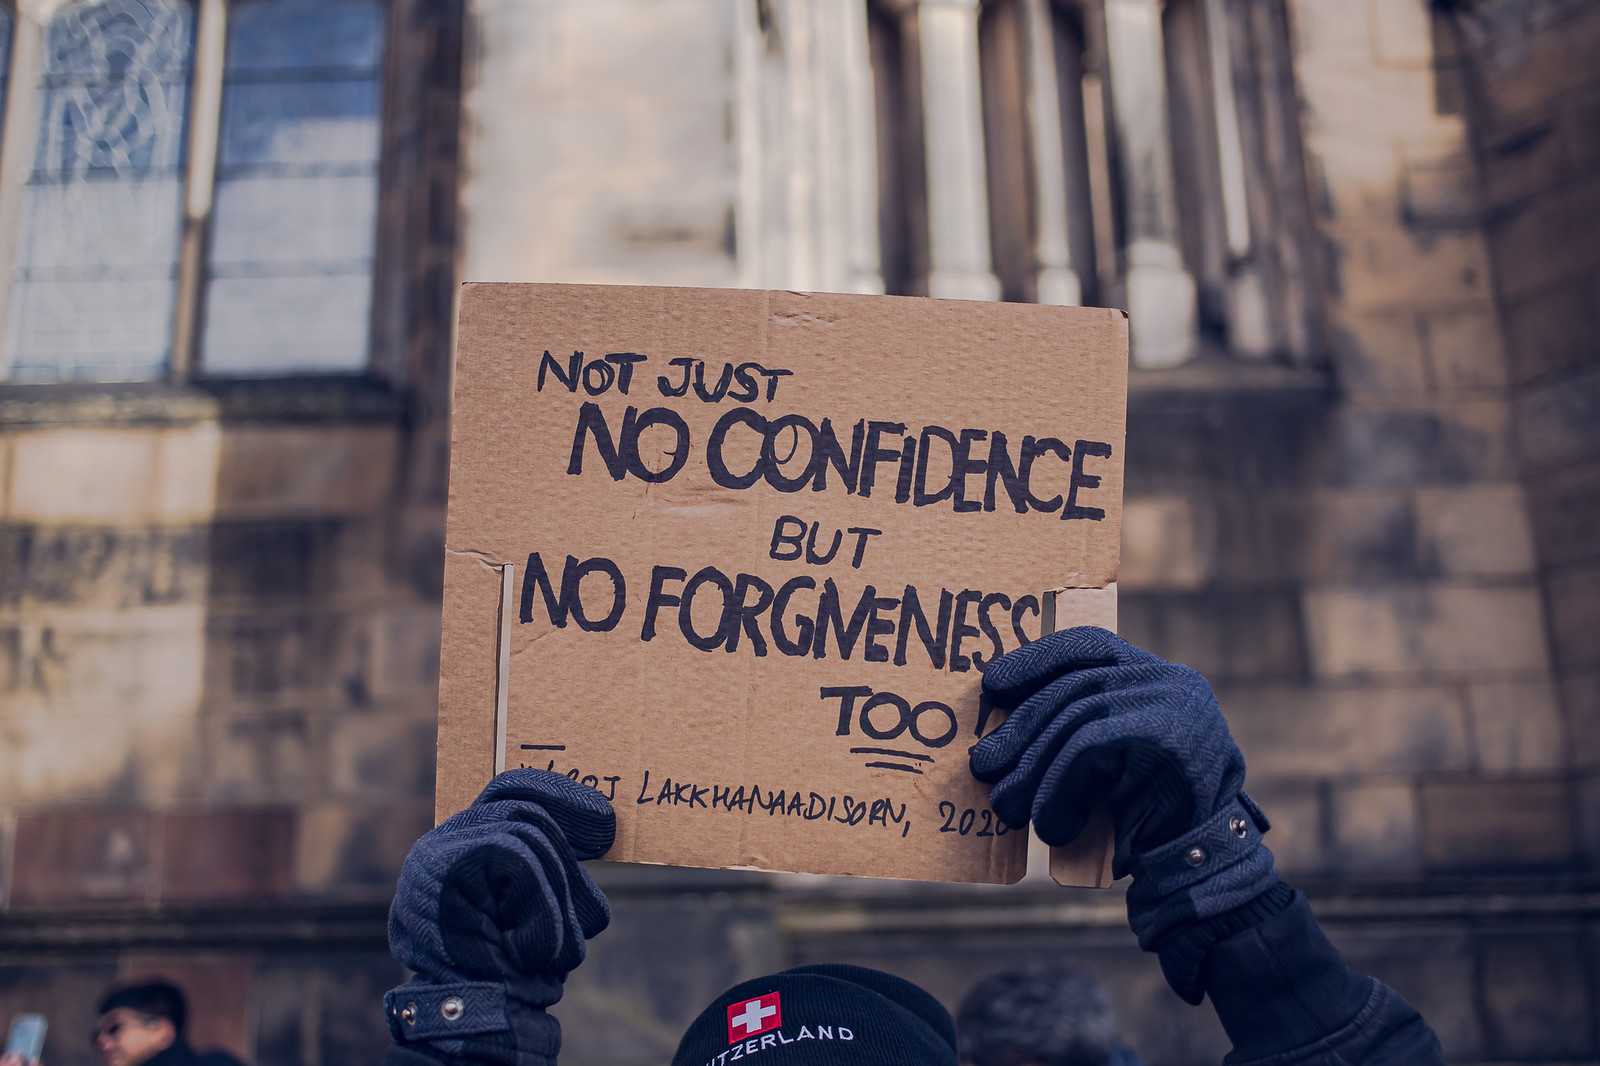 "A protest sign written on cardboard with the message ""Not just no confidence but no forgiveness too"" being held by a pair of hands wearing dark gloves."